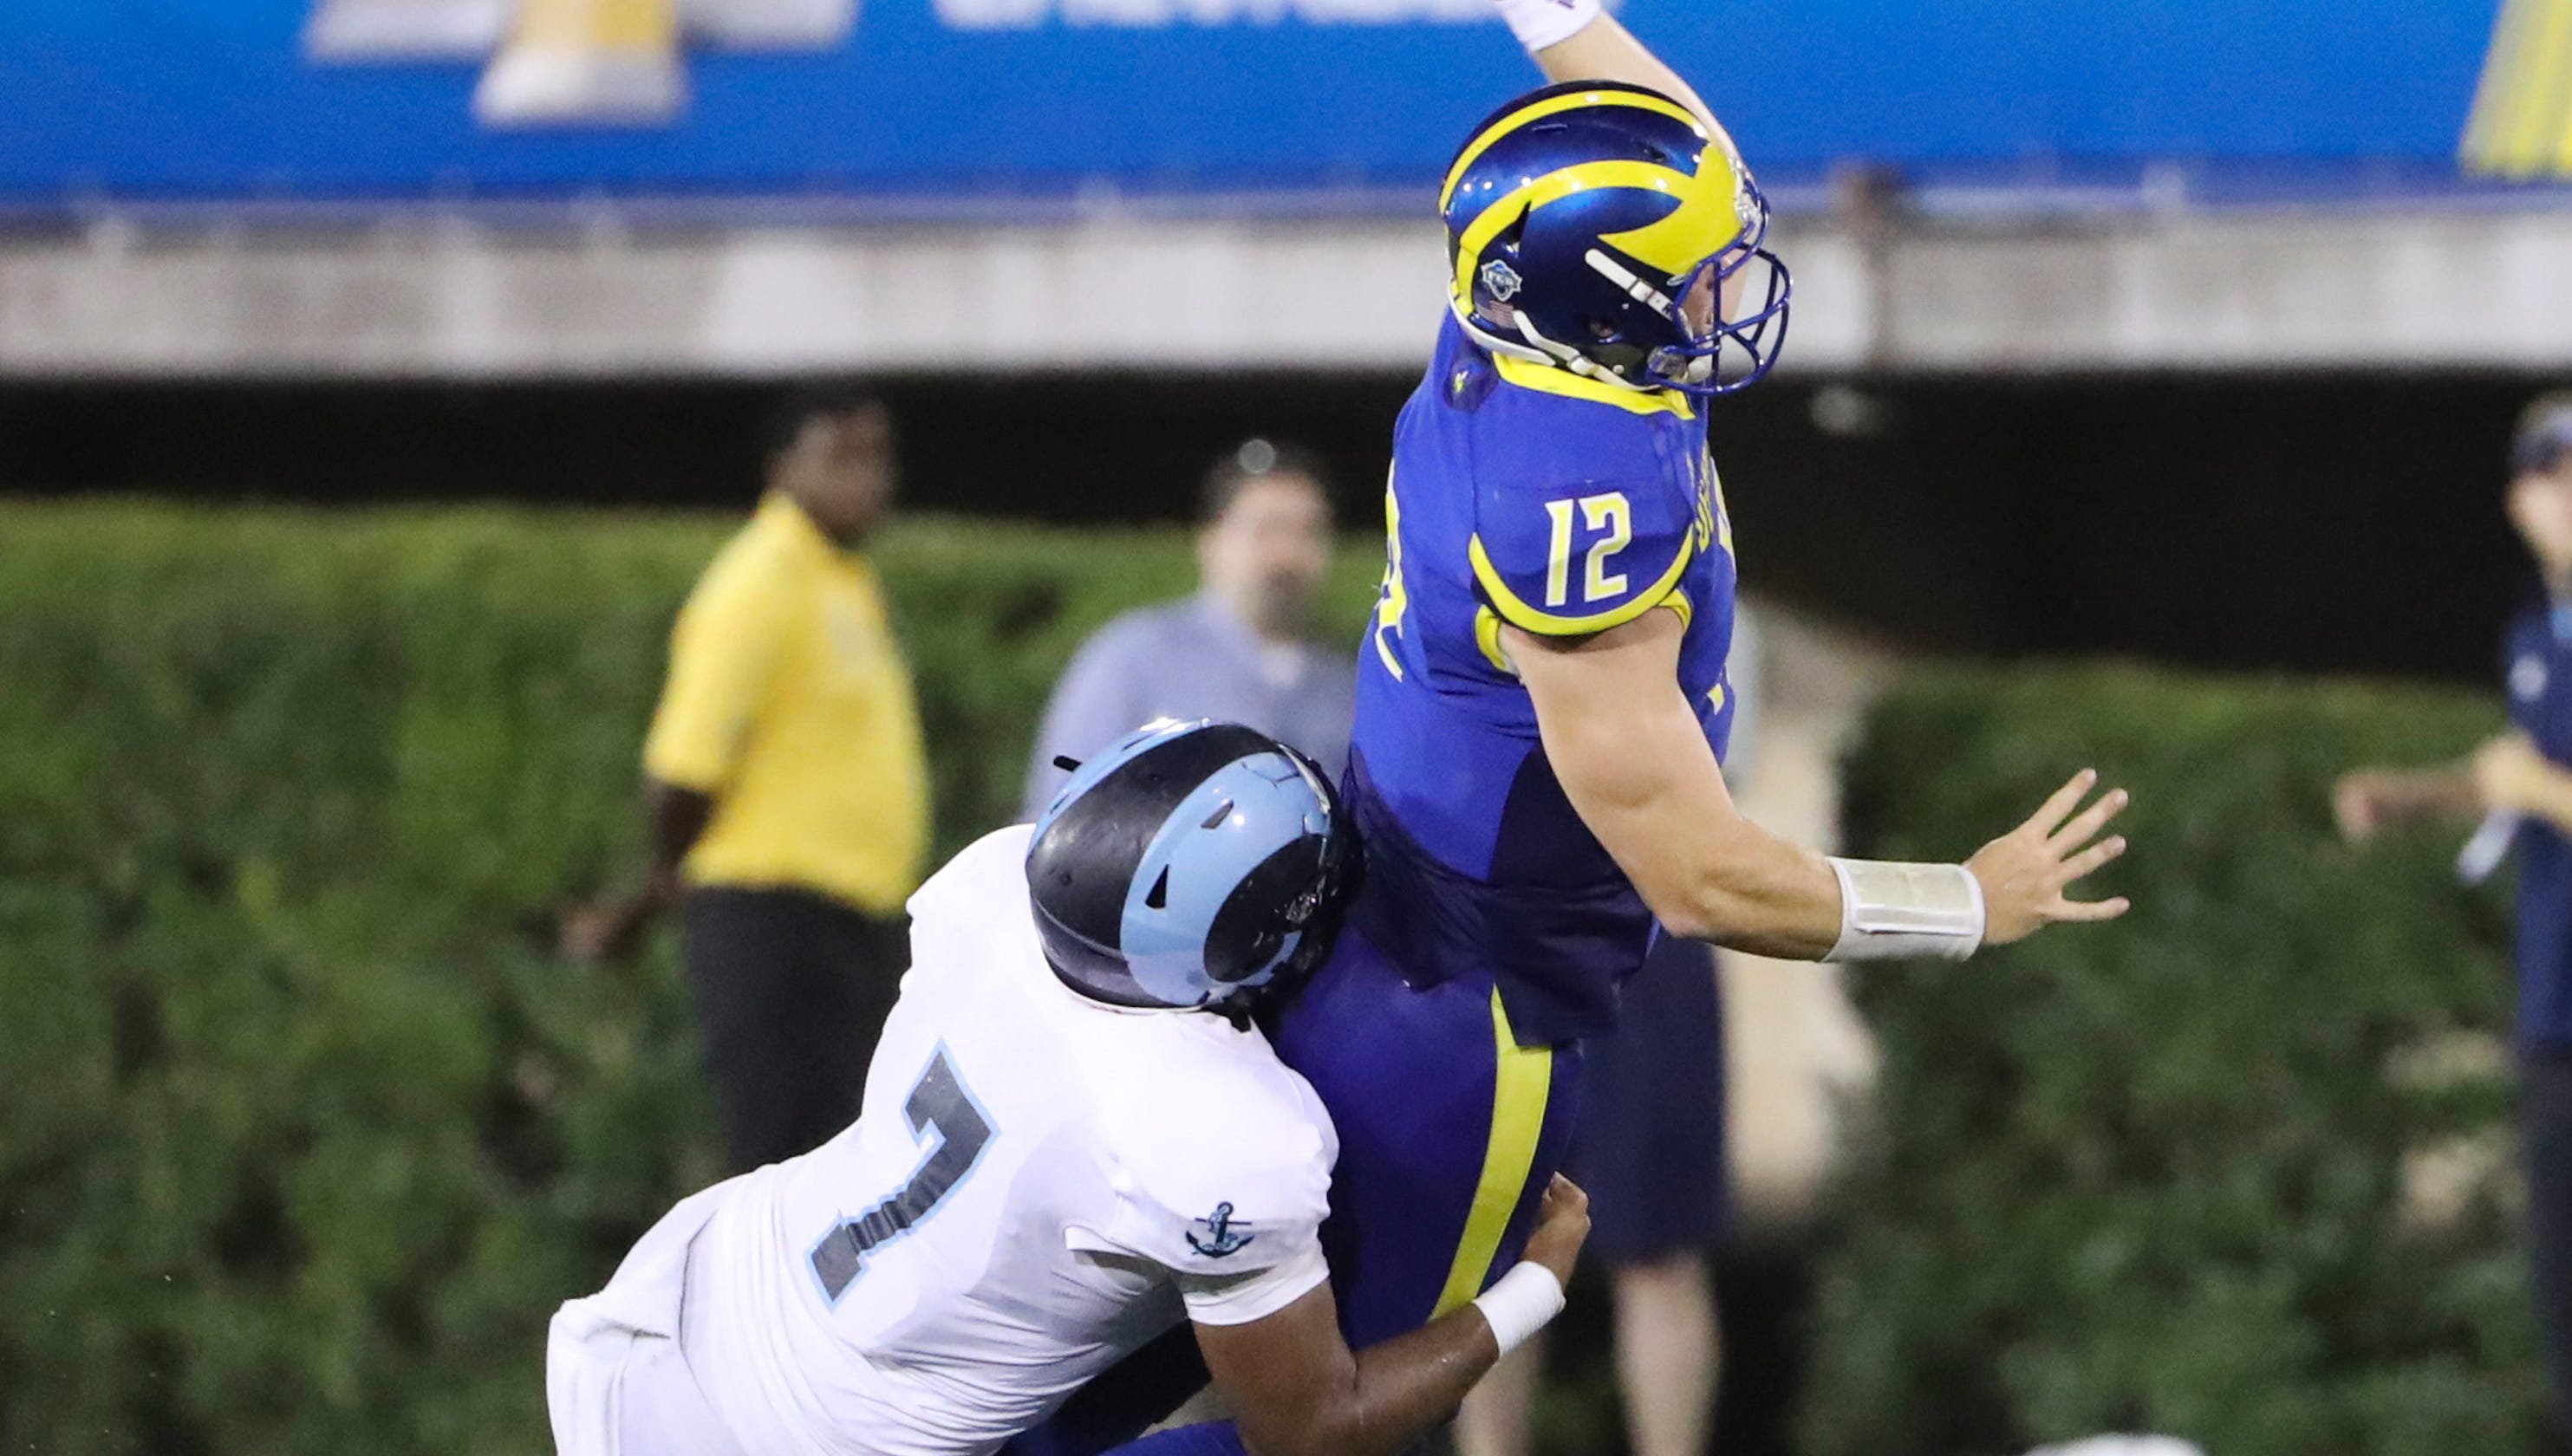 University of Delaware has pivotal CAA football opener at